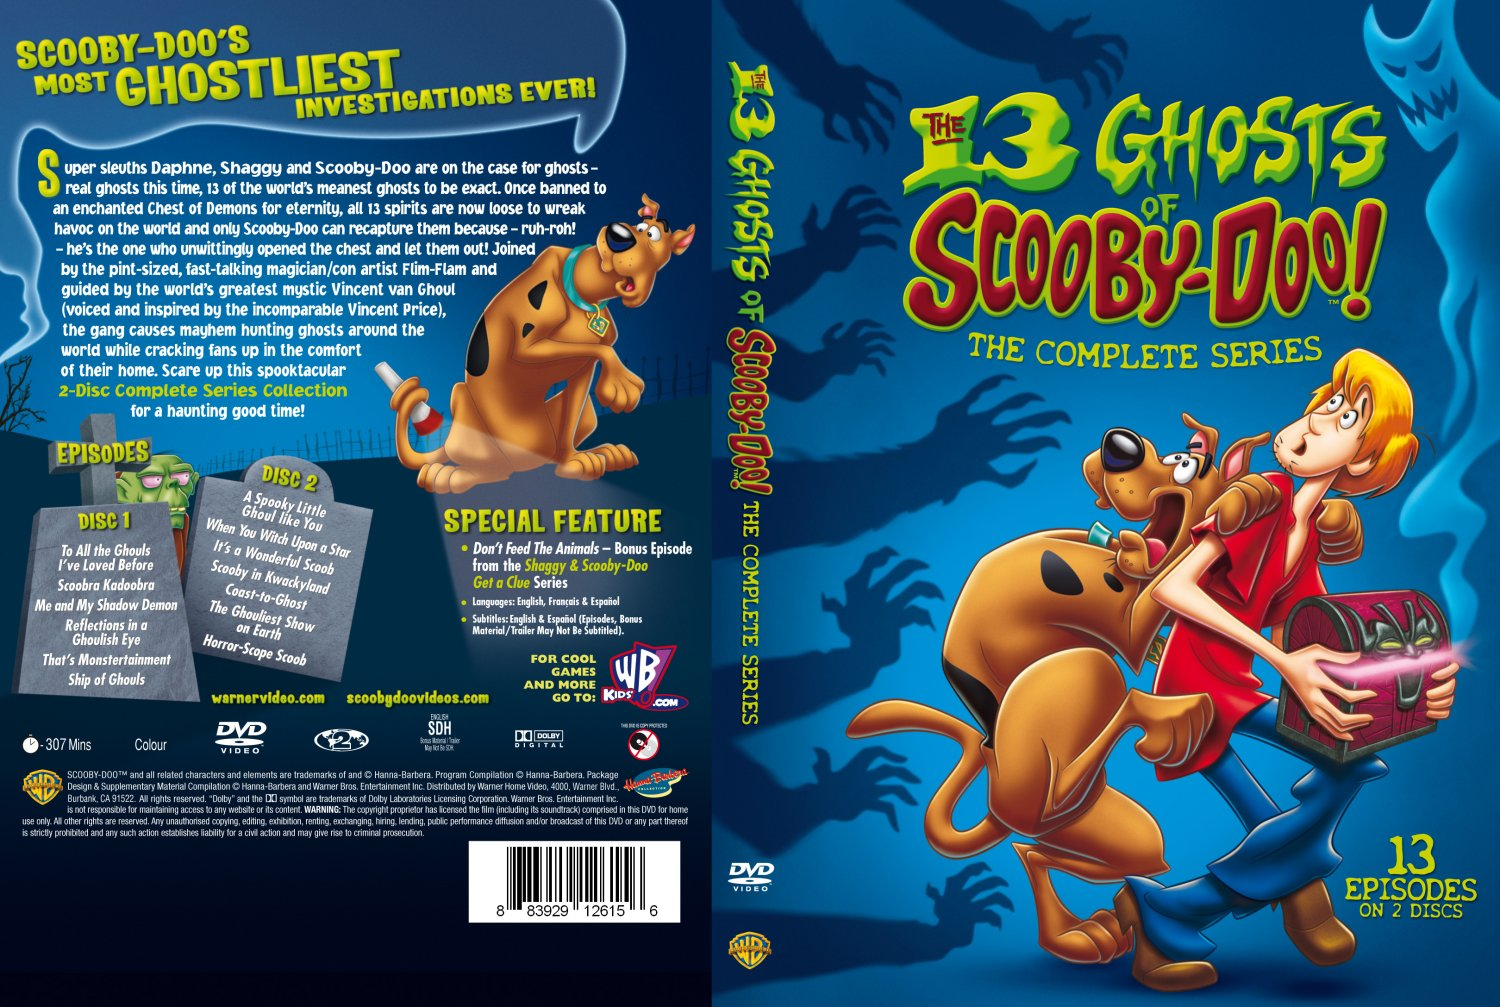 The 13 ghosts of scooby doo the complete series